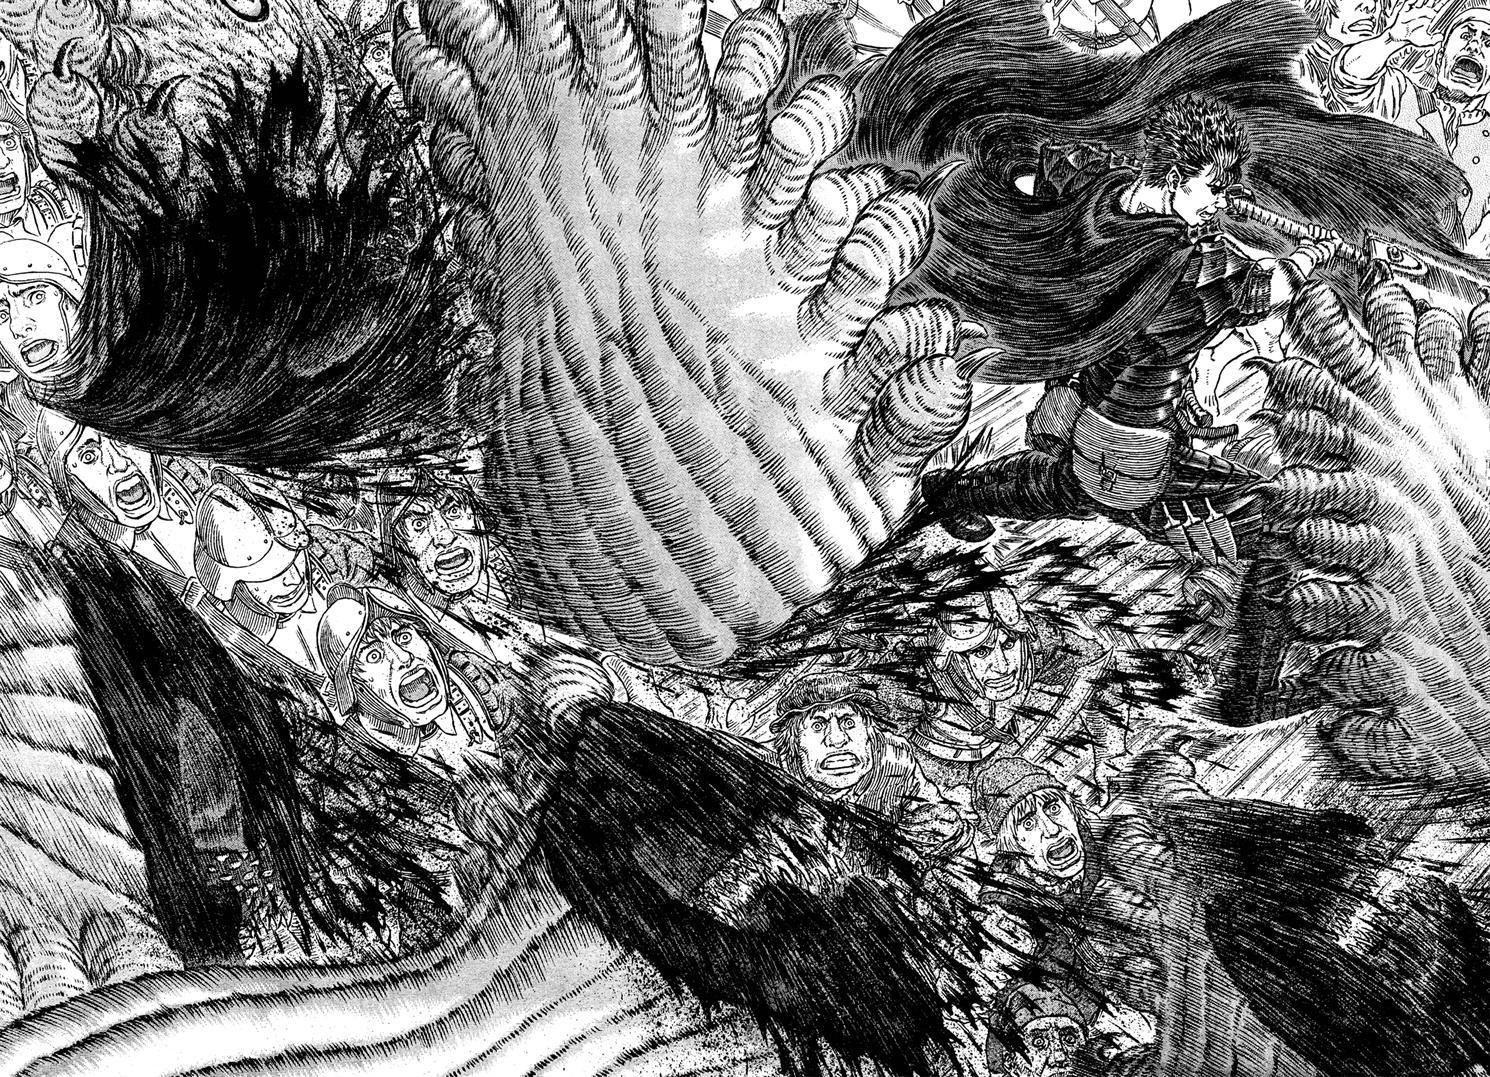 Monsters Berserk Manga Swords Wallpaper